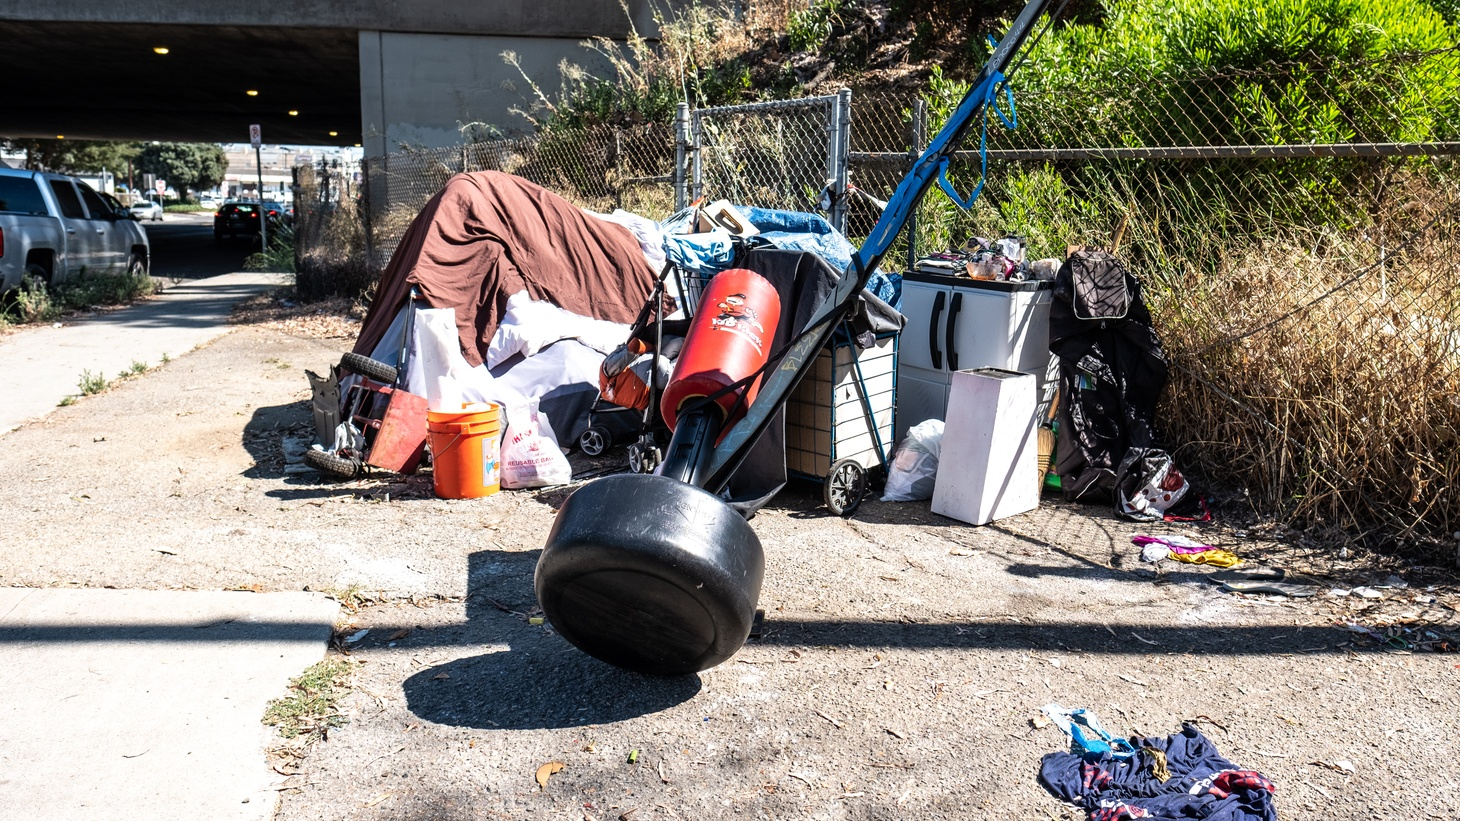 This homeless camp is just outside a freeway overpass in Santa Monica. A federal judge's order (effective May 22) says homeless encampments must be moved if they are near freeway overpasses.